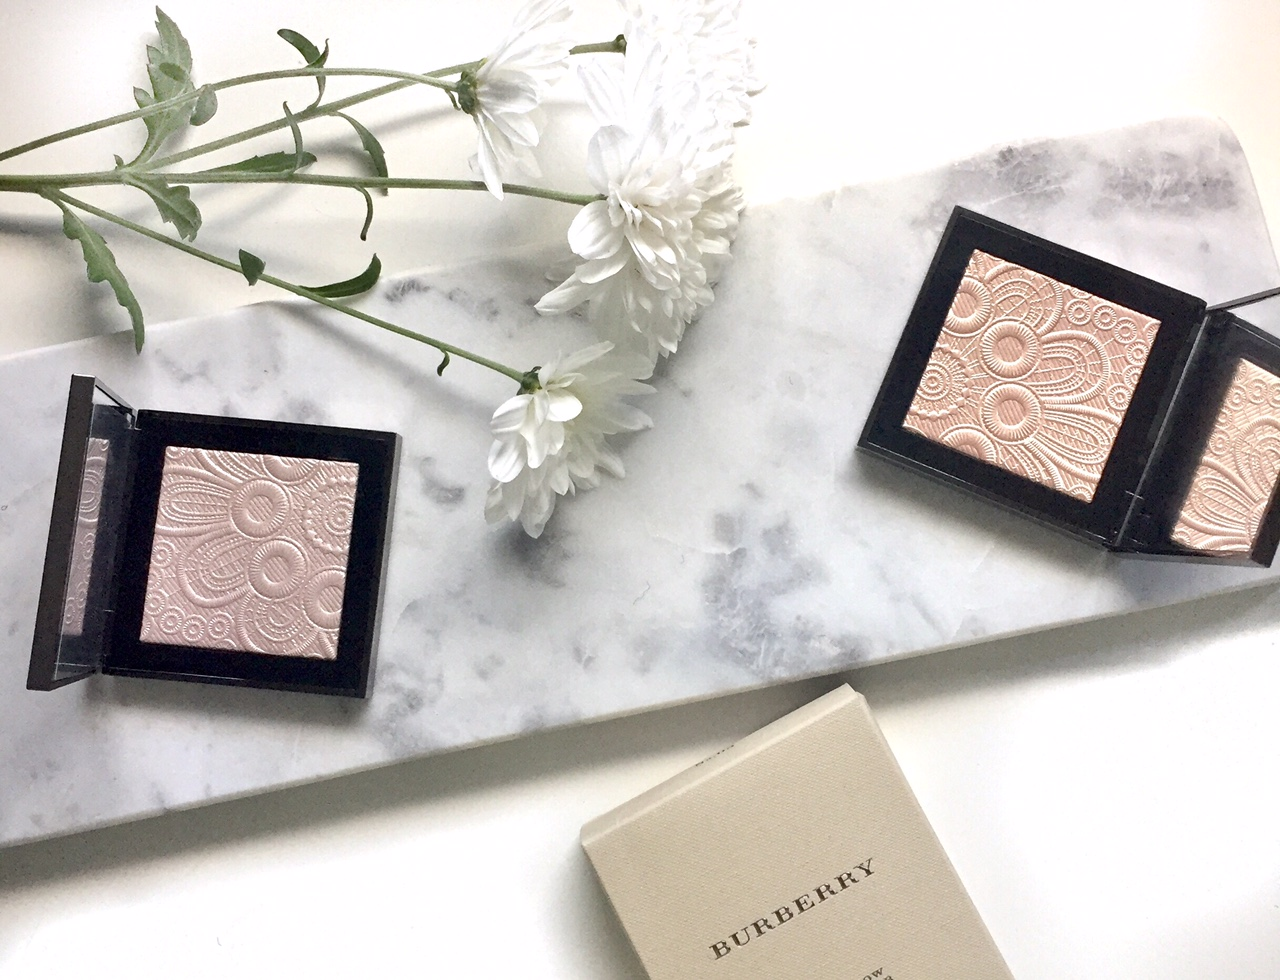 Burberry Fresh Glow Highlighter